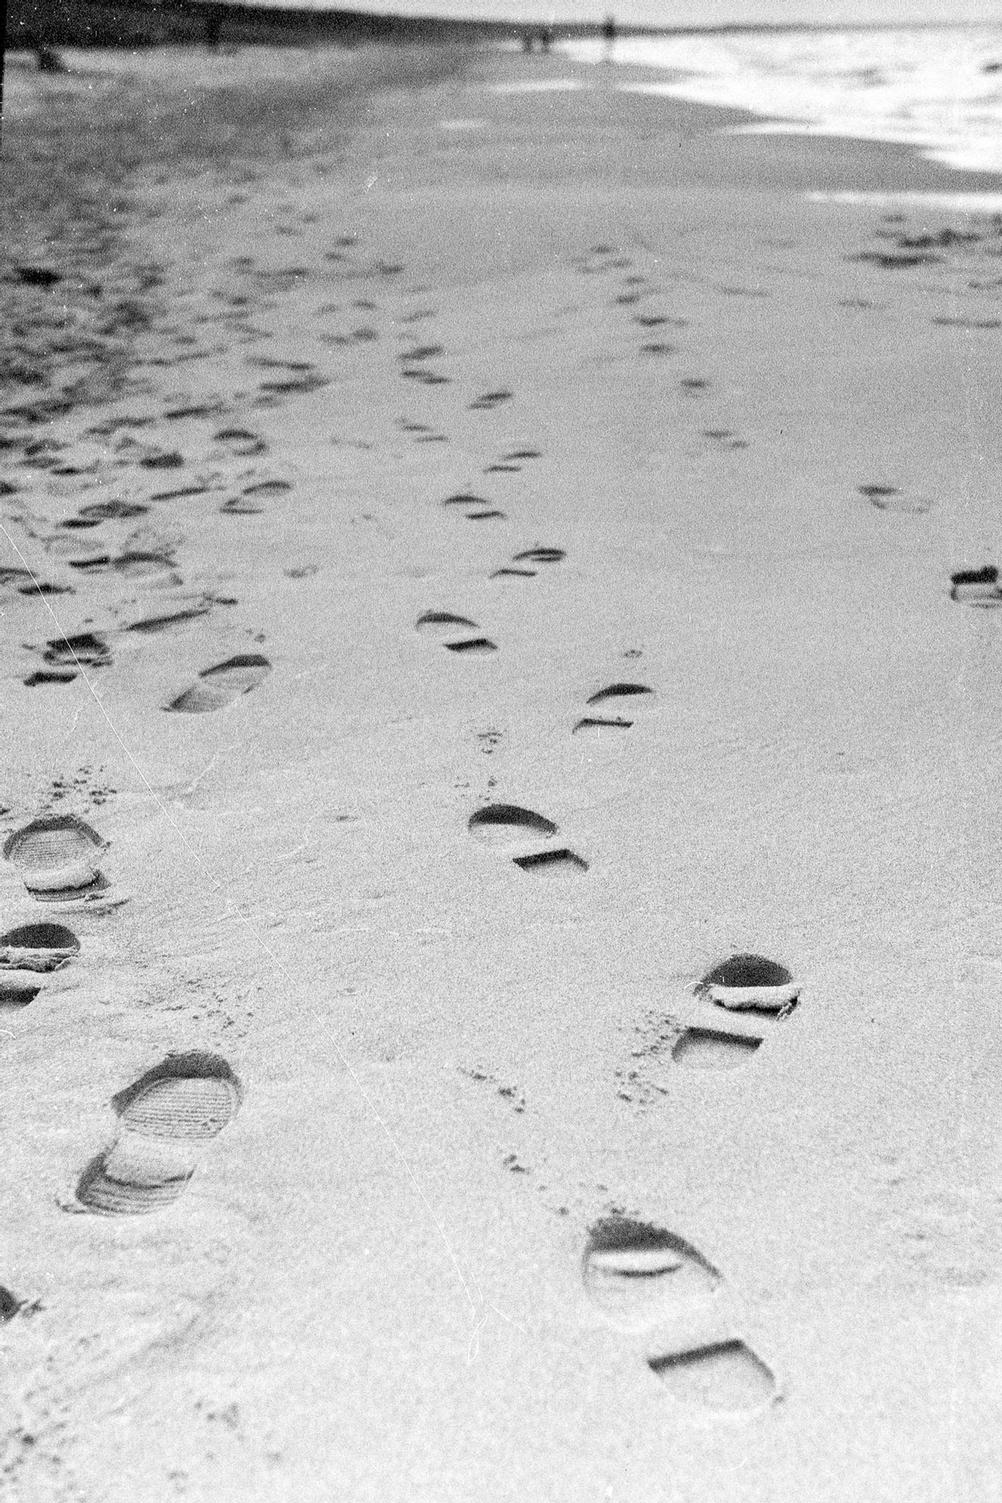 Photo of foot marks in the sand.